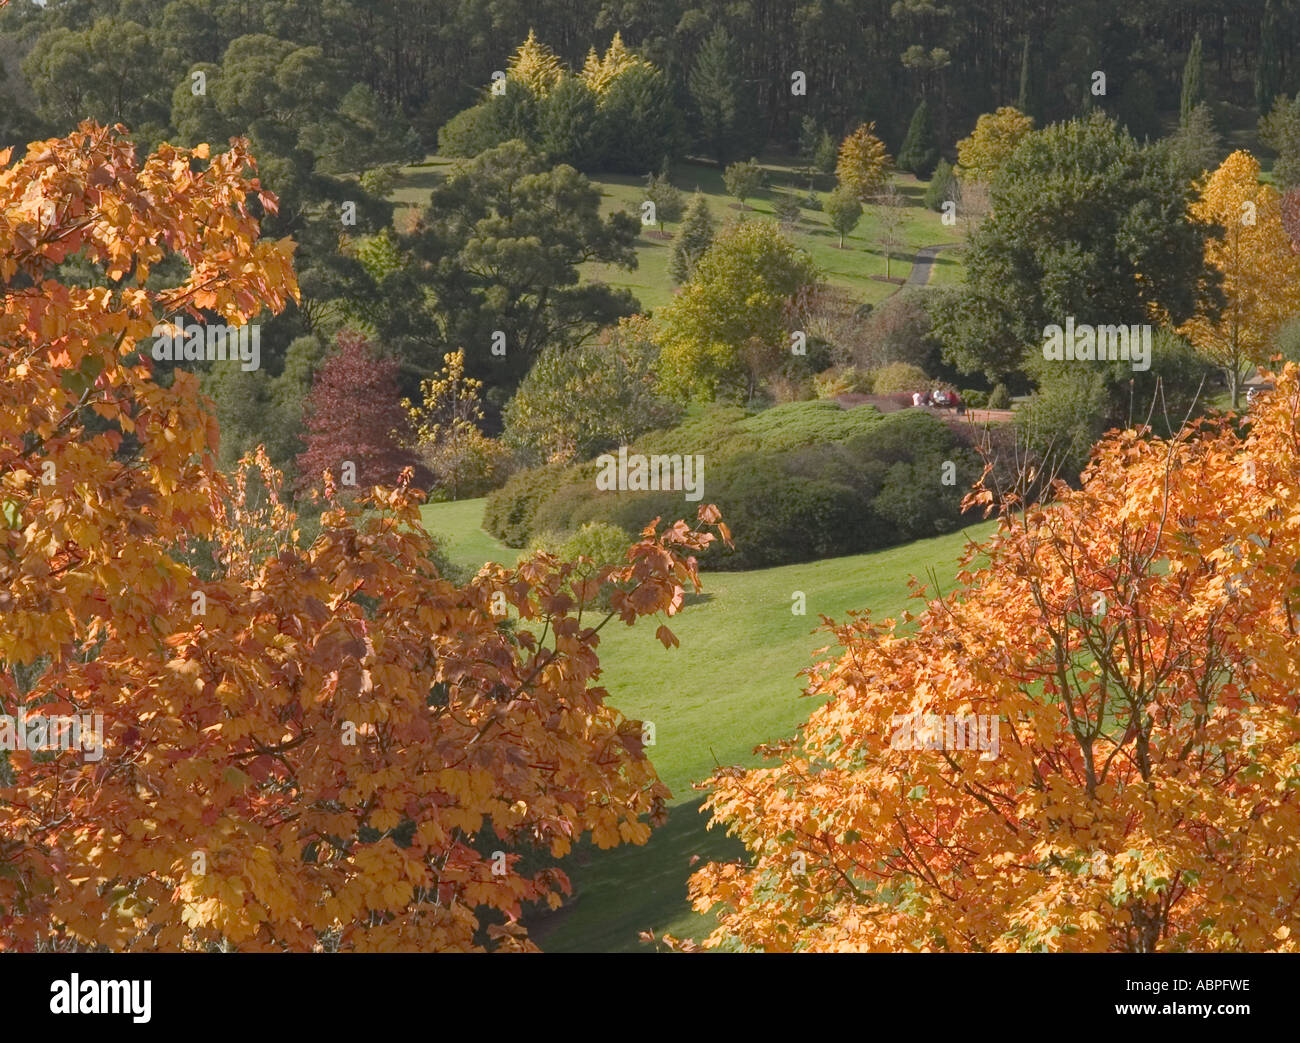 AUTUMNAL VIEW OF TREES TOPS AND DISTANT GARDEN, MOUNT LOFTY BOTANICAL GARDENS,  ADELAIDE, SOUTH AUSTRALIA, - Stock Image